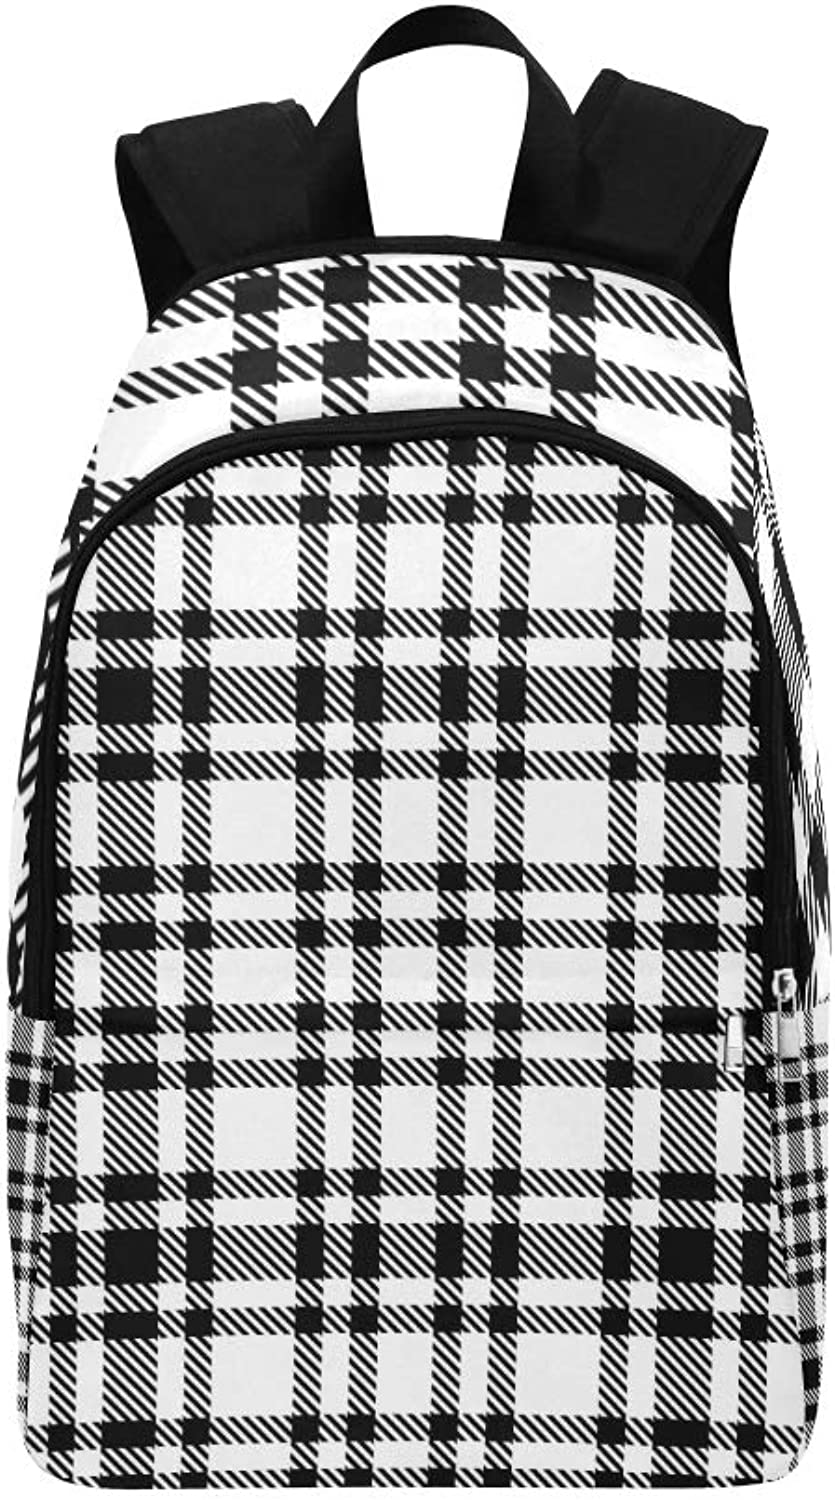 blueee Checkered Tablecloth Casual Daypack Travel Bag College School Backpack for Mens and Women